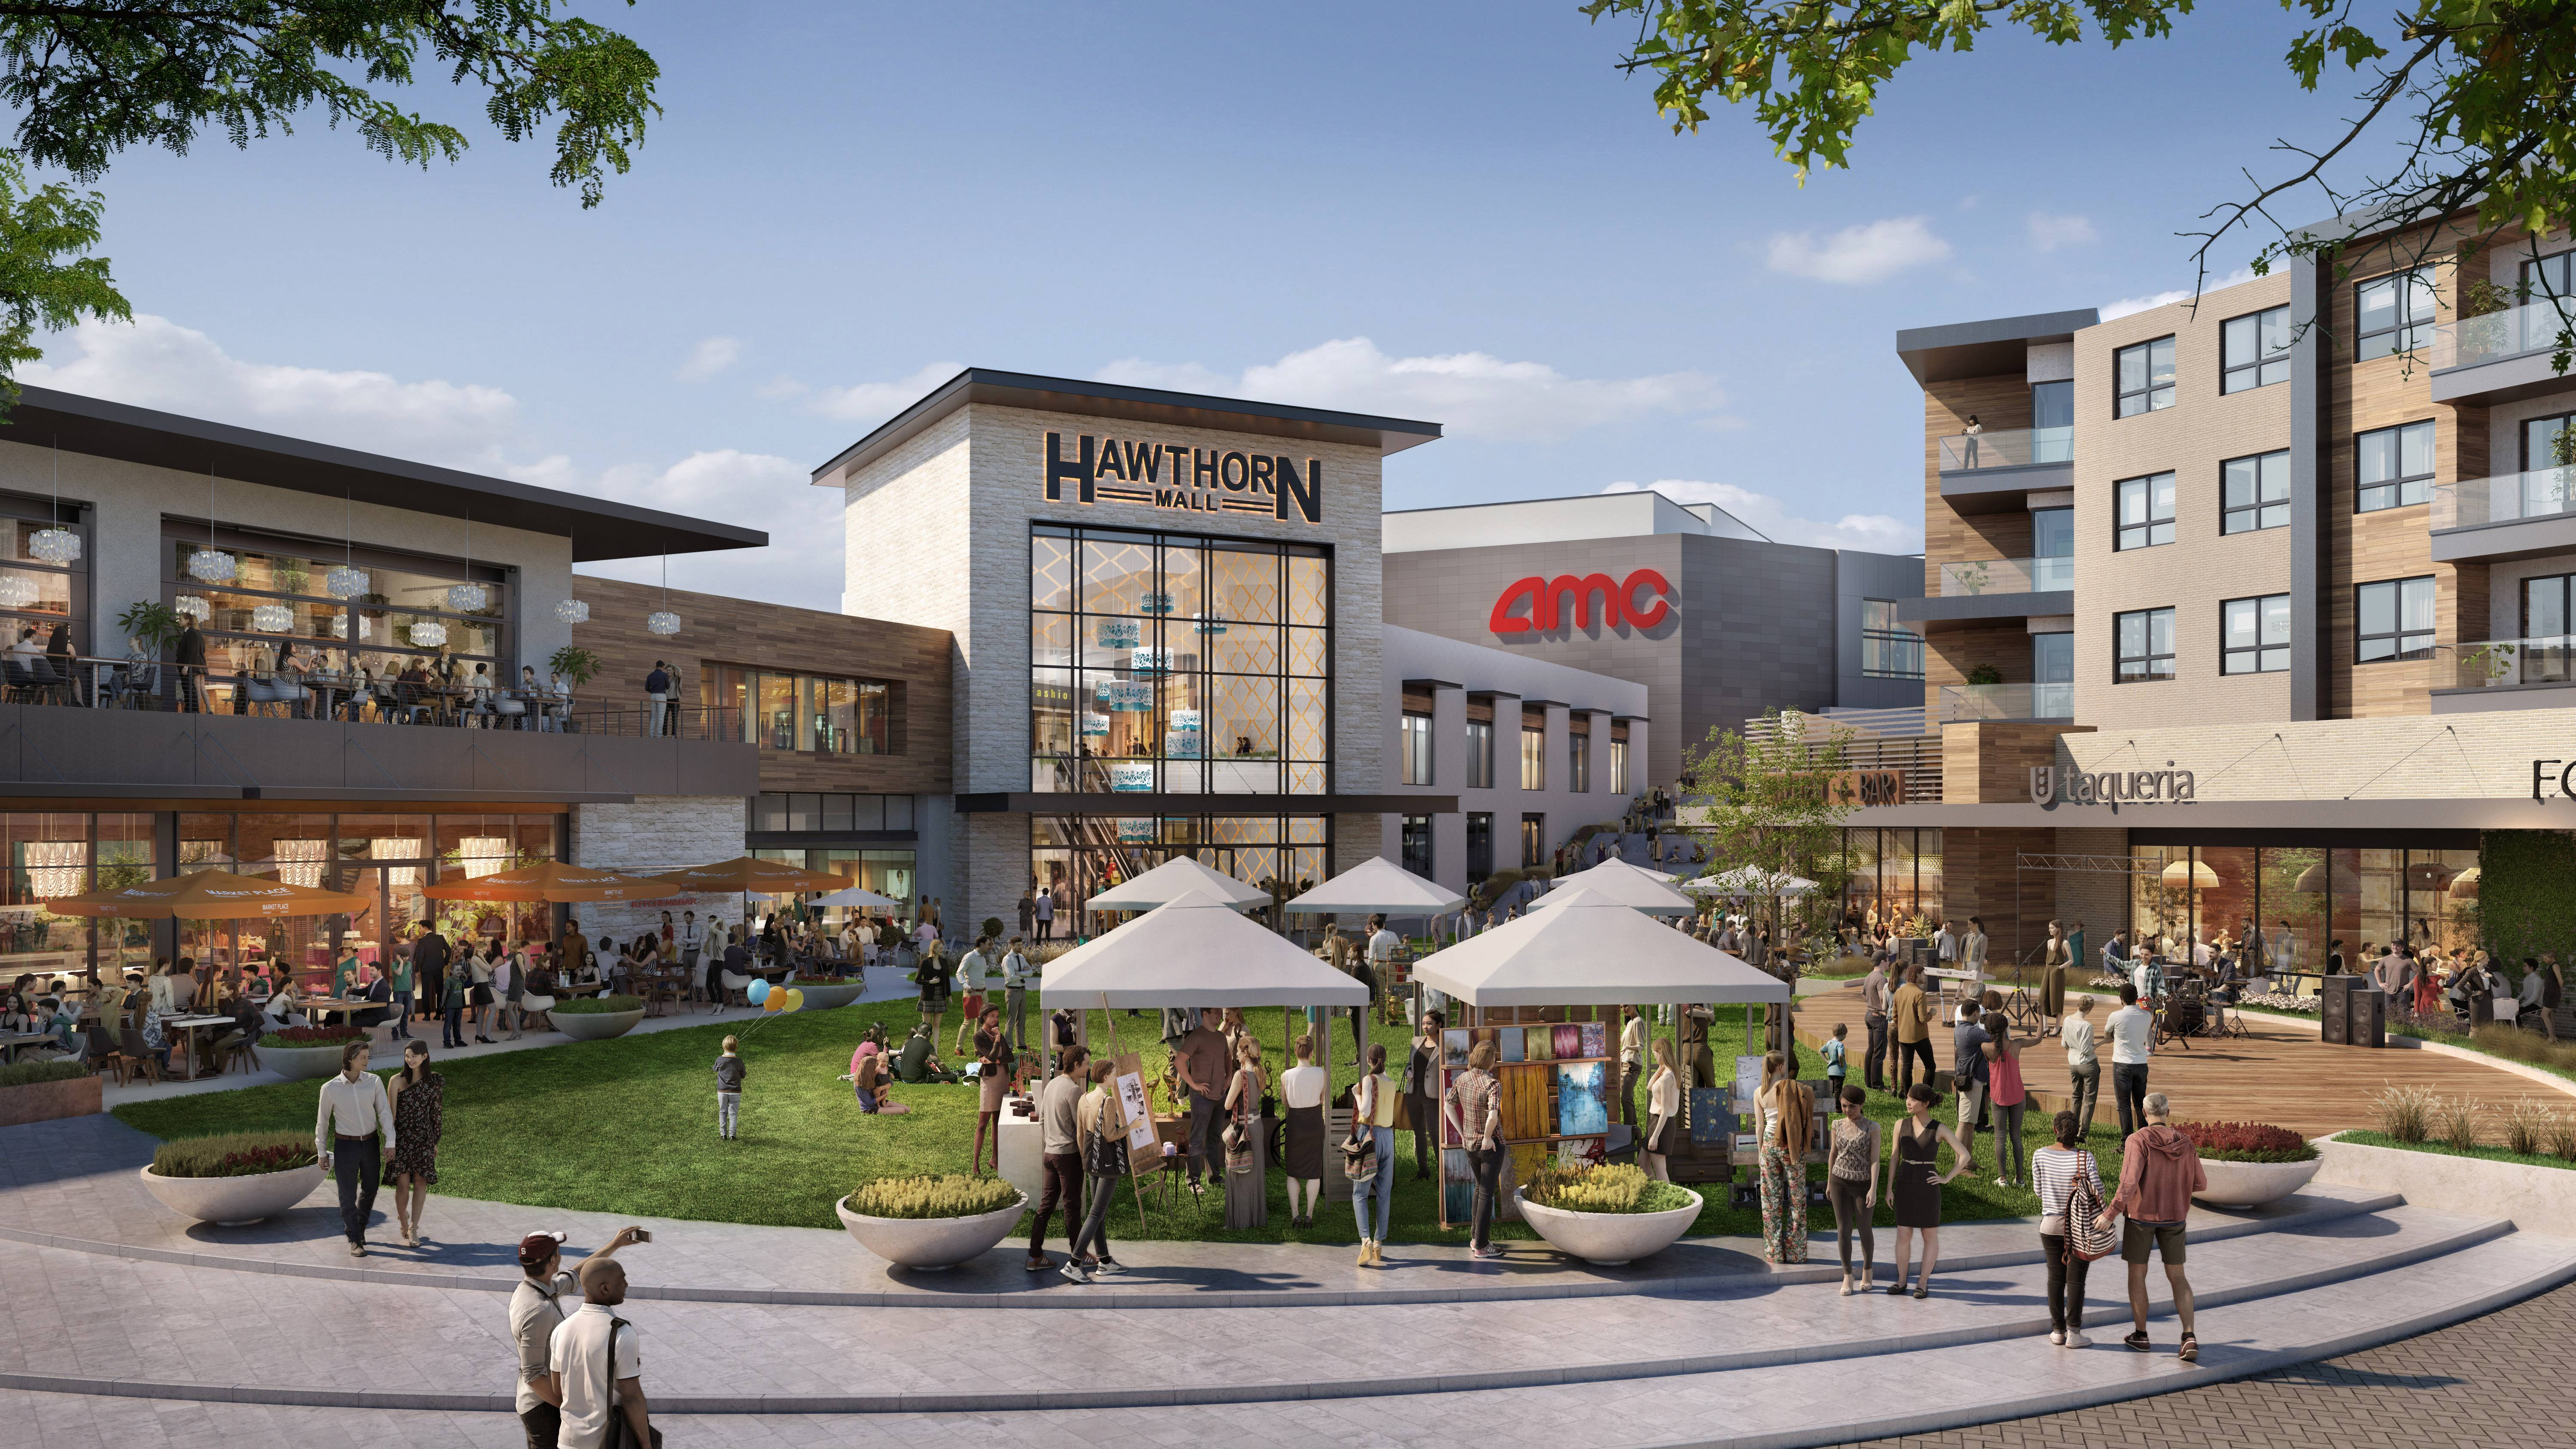 Hawthorn Mall owner on major makeover: We're in it for the long haul